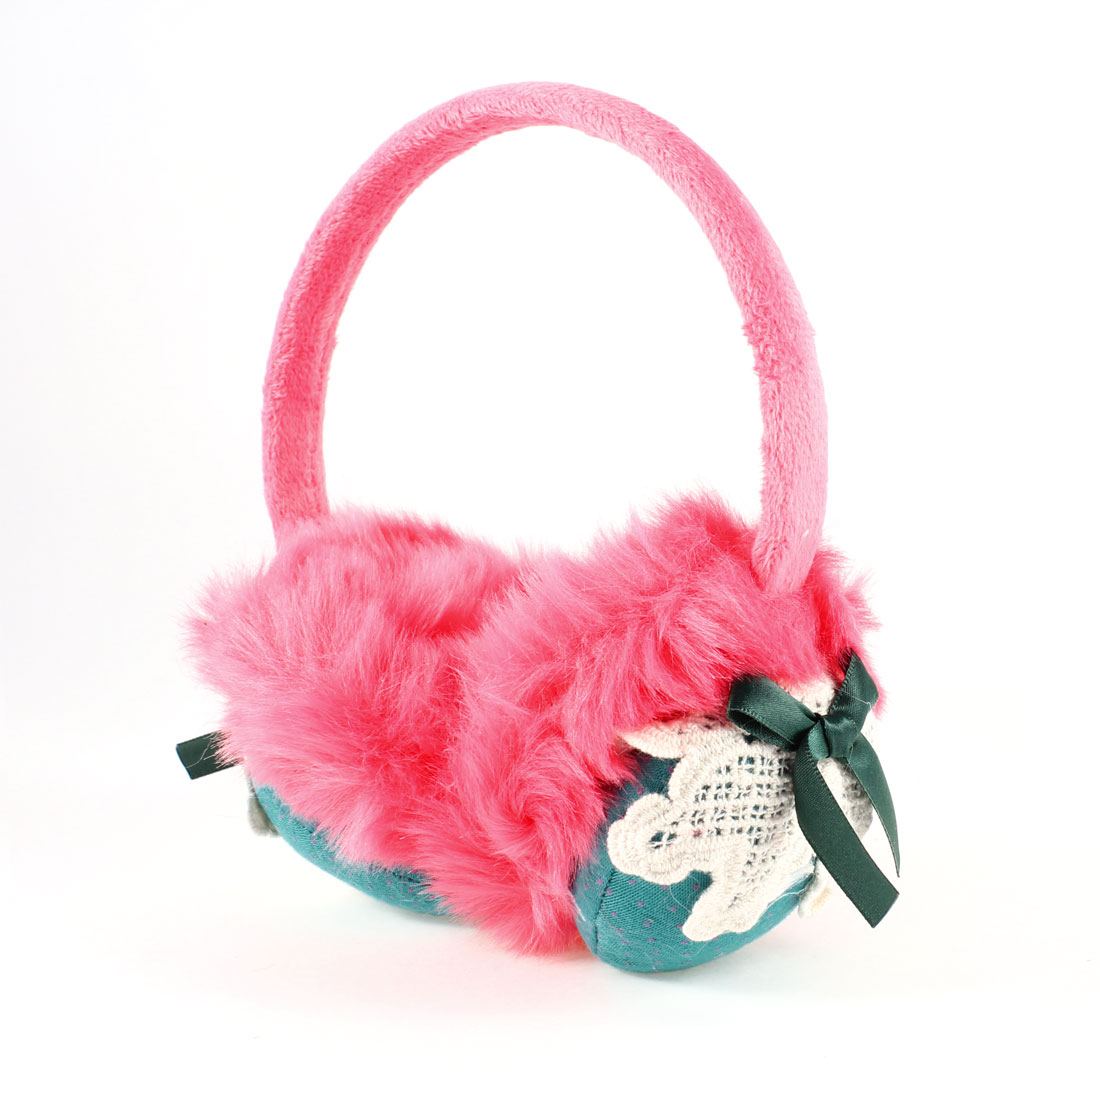 Ladies Fluffy Earpad Round Headband Winter Ear Cover Earmuff Hot Pink